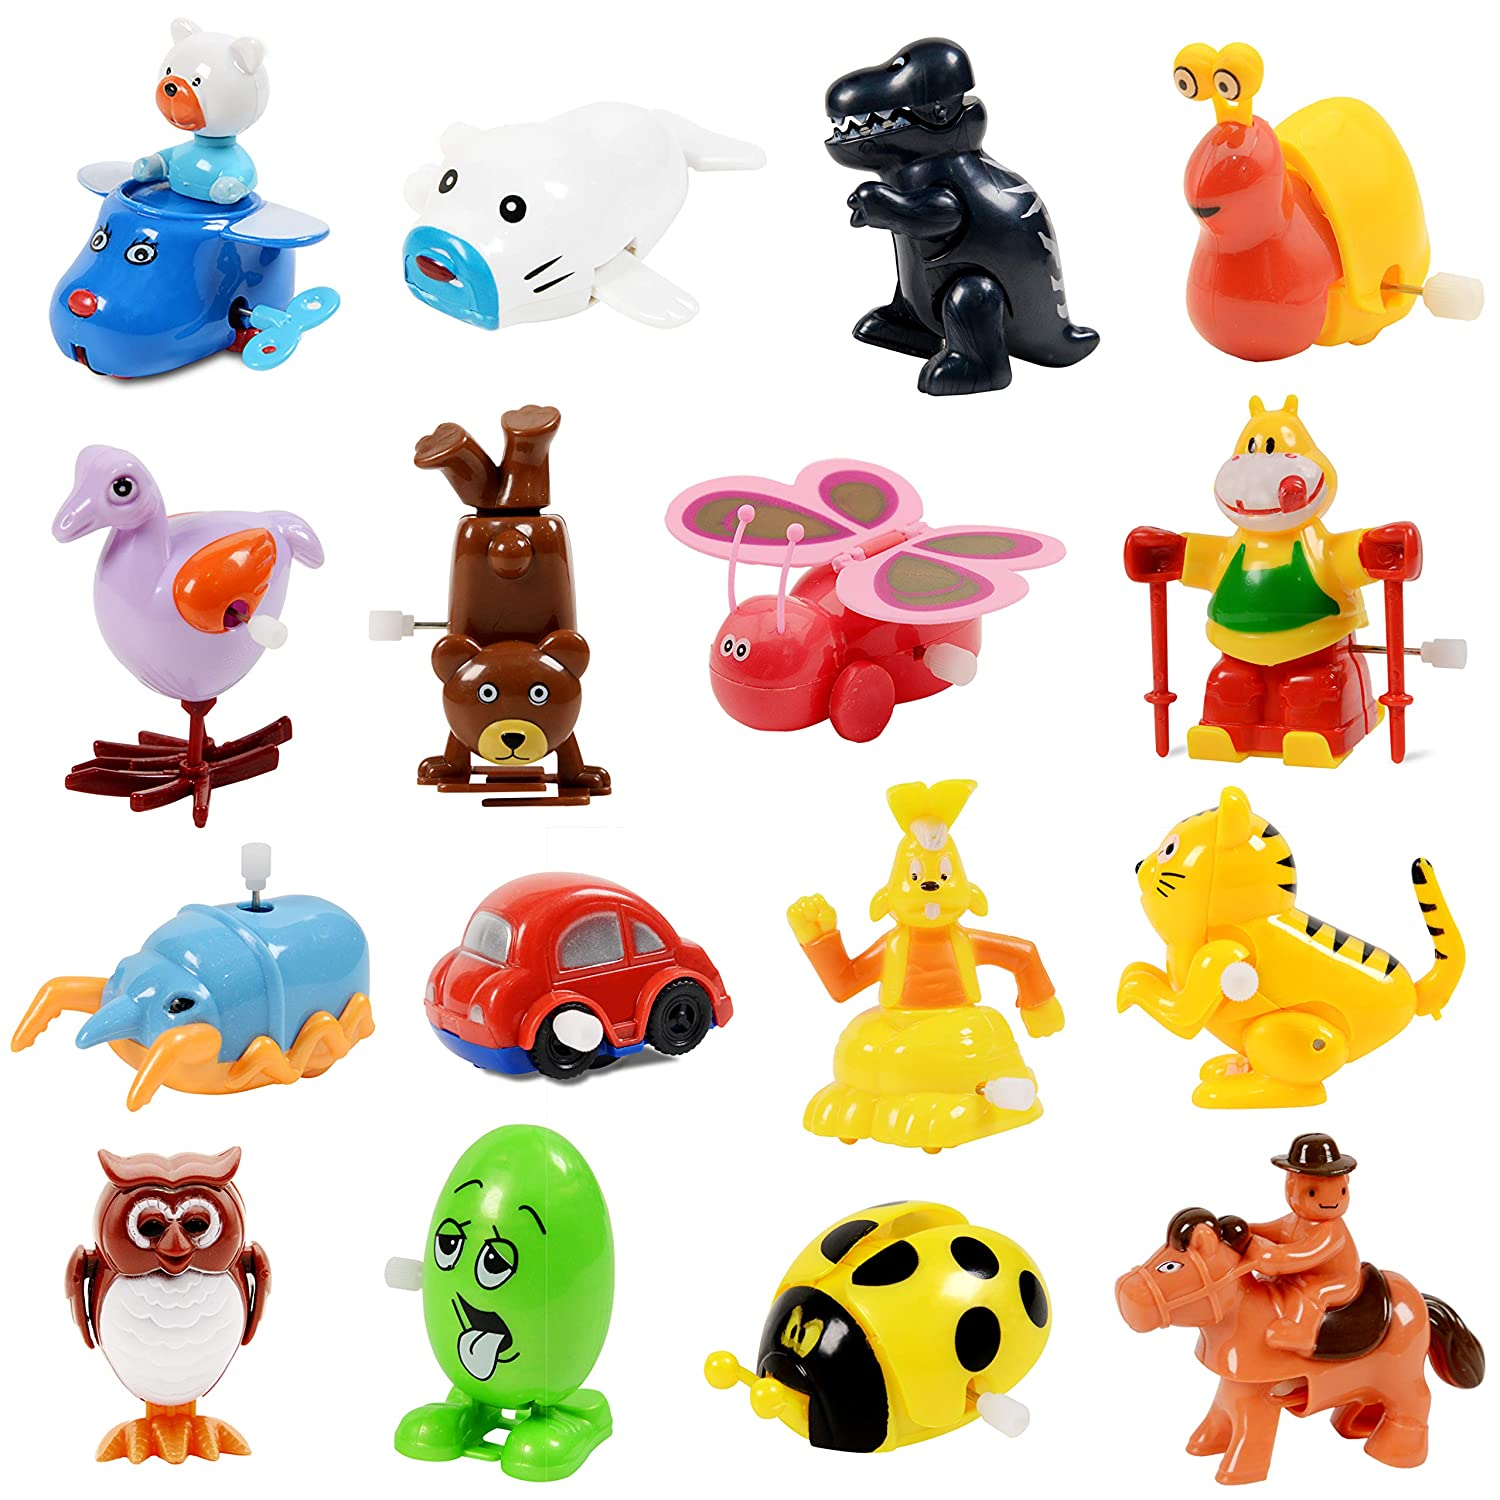 Wind Up Toy,16 Pack Assorted Clockwork Toy Set(Contents and Color May Vary),Original Color Wind Up Animal Party Favors Toy Great Gift for Boys Girls Kids Toddlers